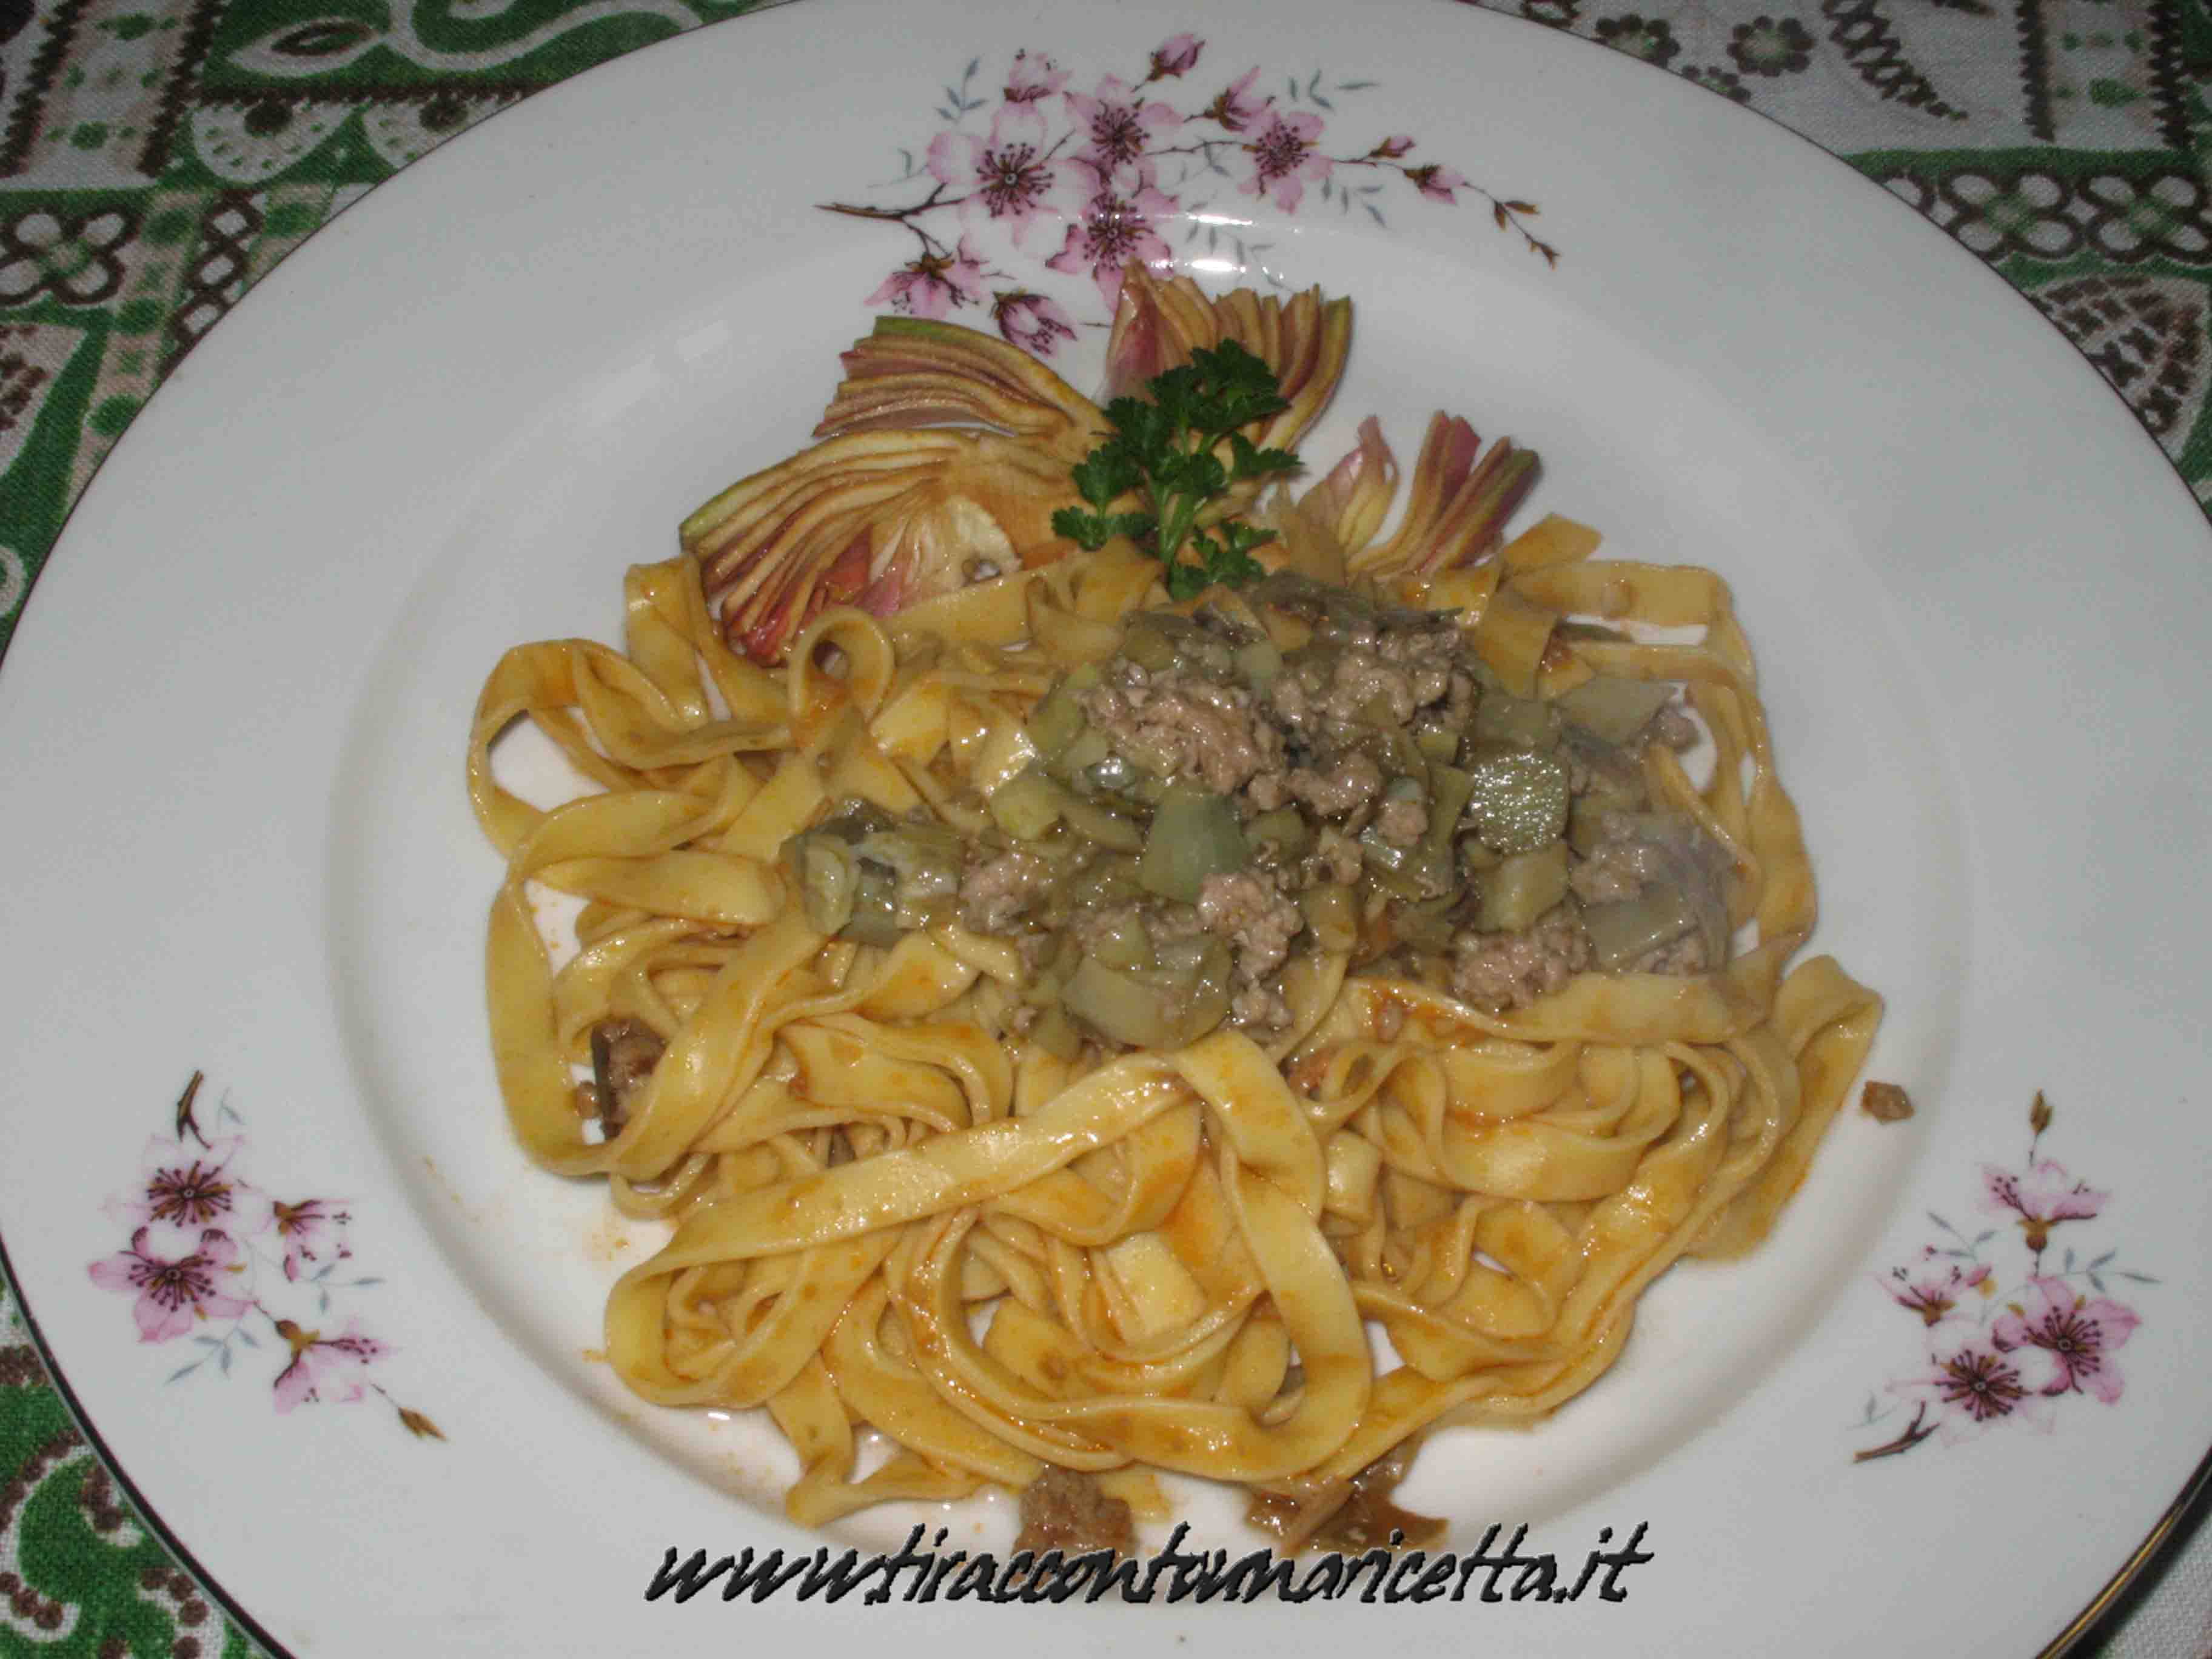 Fettuccine with artichokes and ground beef